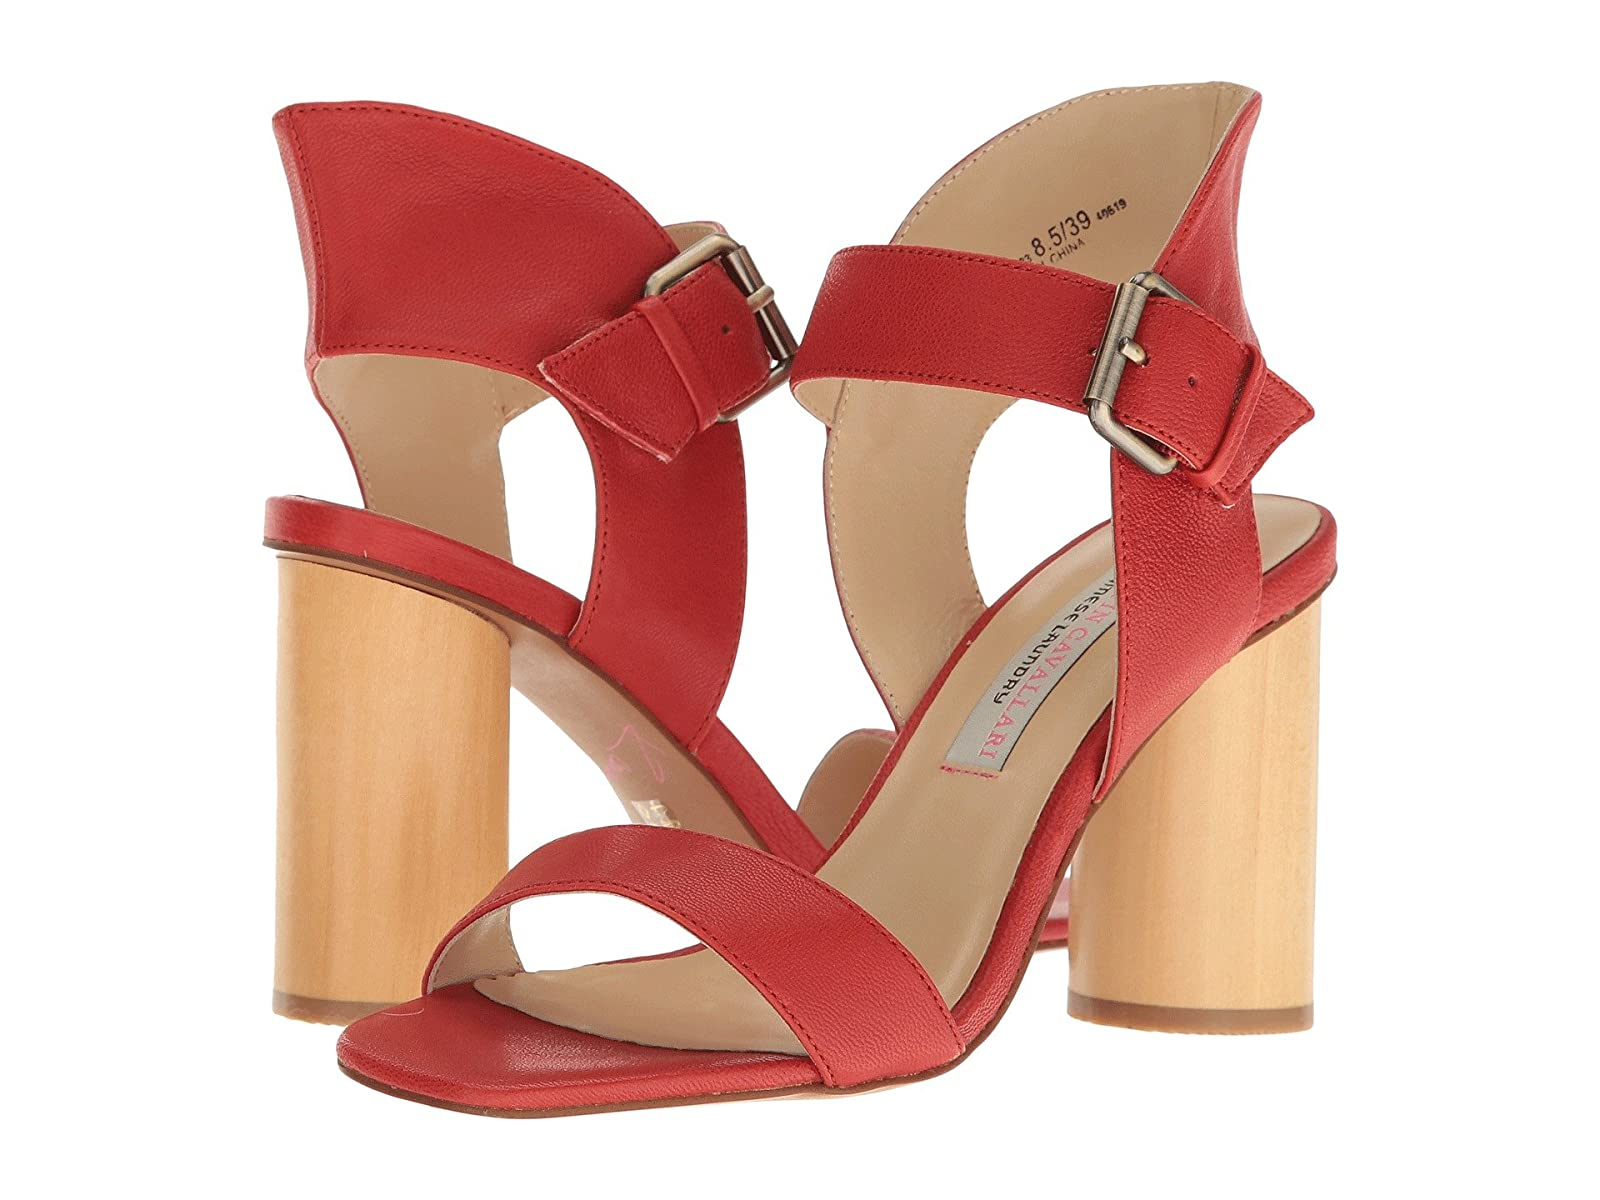 Kristin Cavallari Locator Leather Heeled SandalCheap and distinctive eye-catching shoes